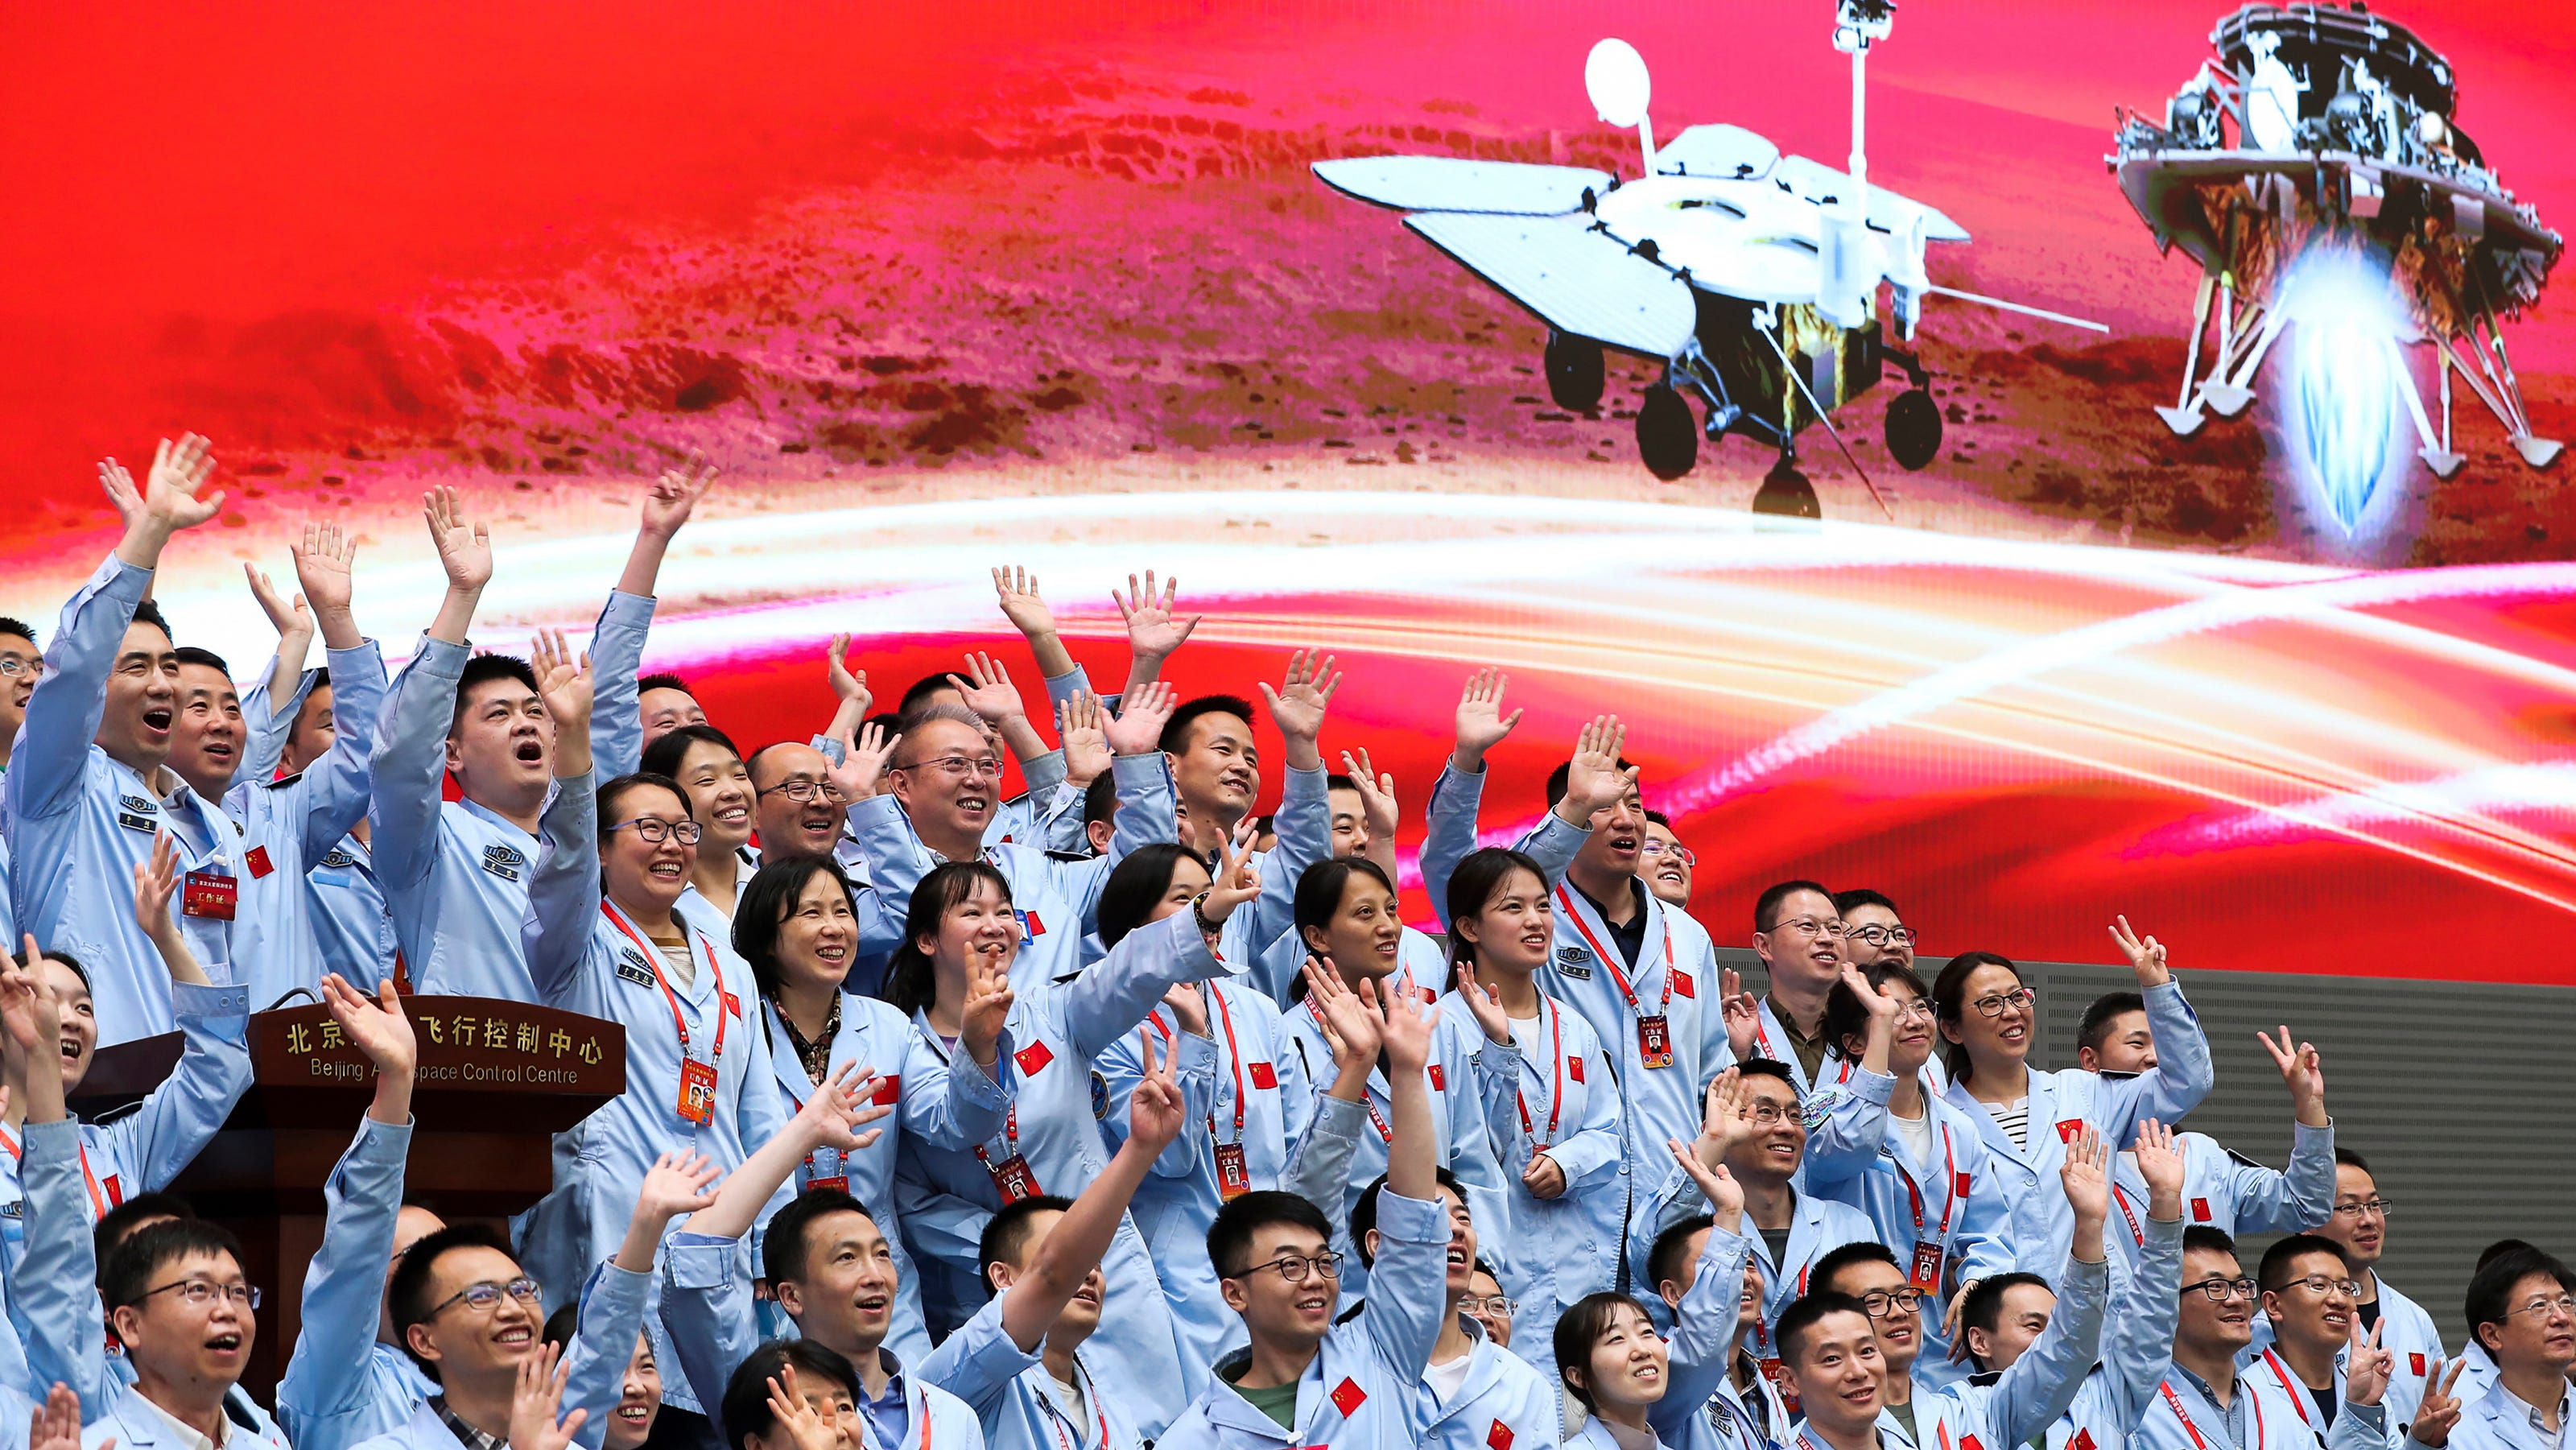 Zhurong rover lands on Mars; China joins US as only nations to successfully land on planet